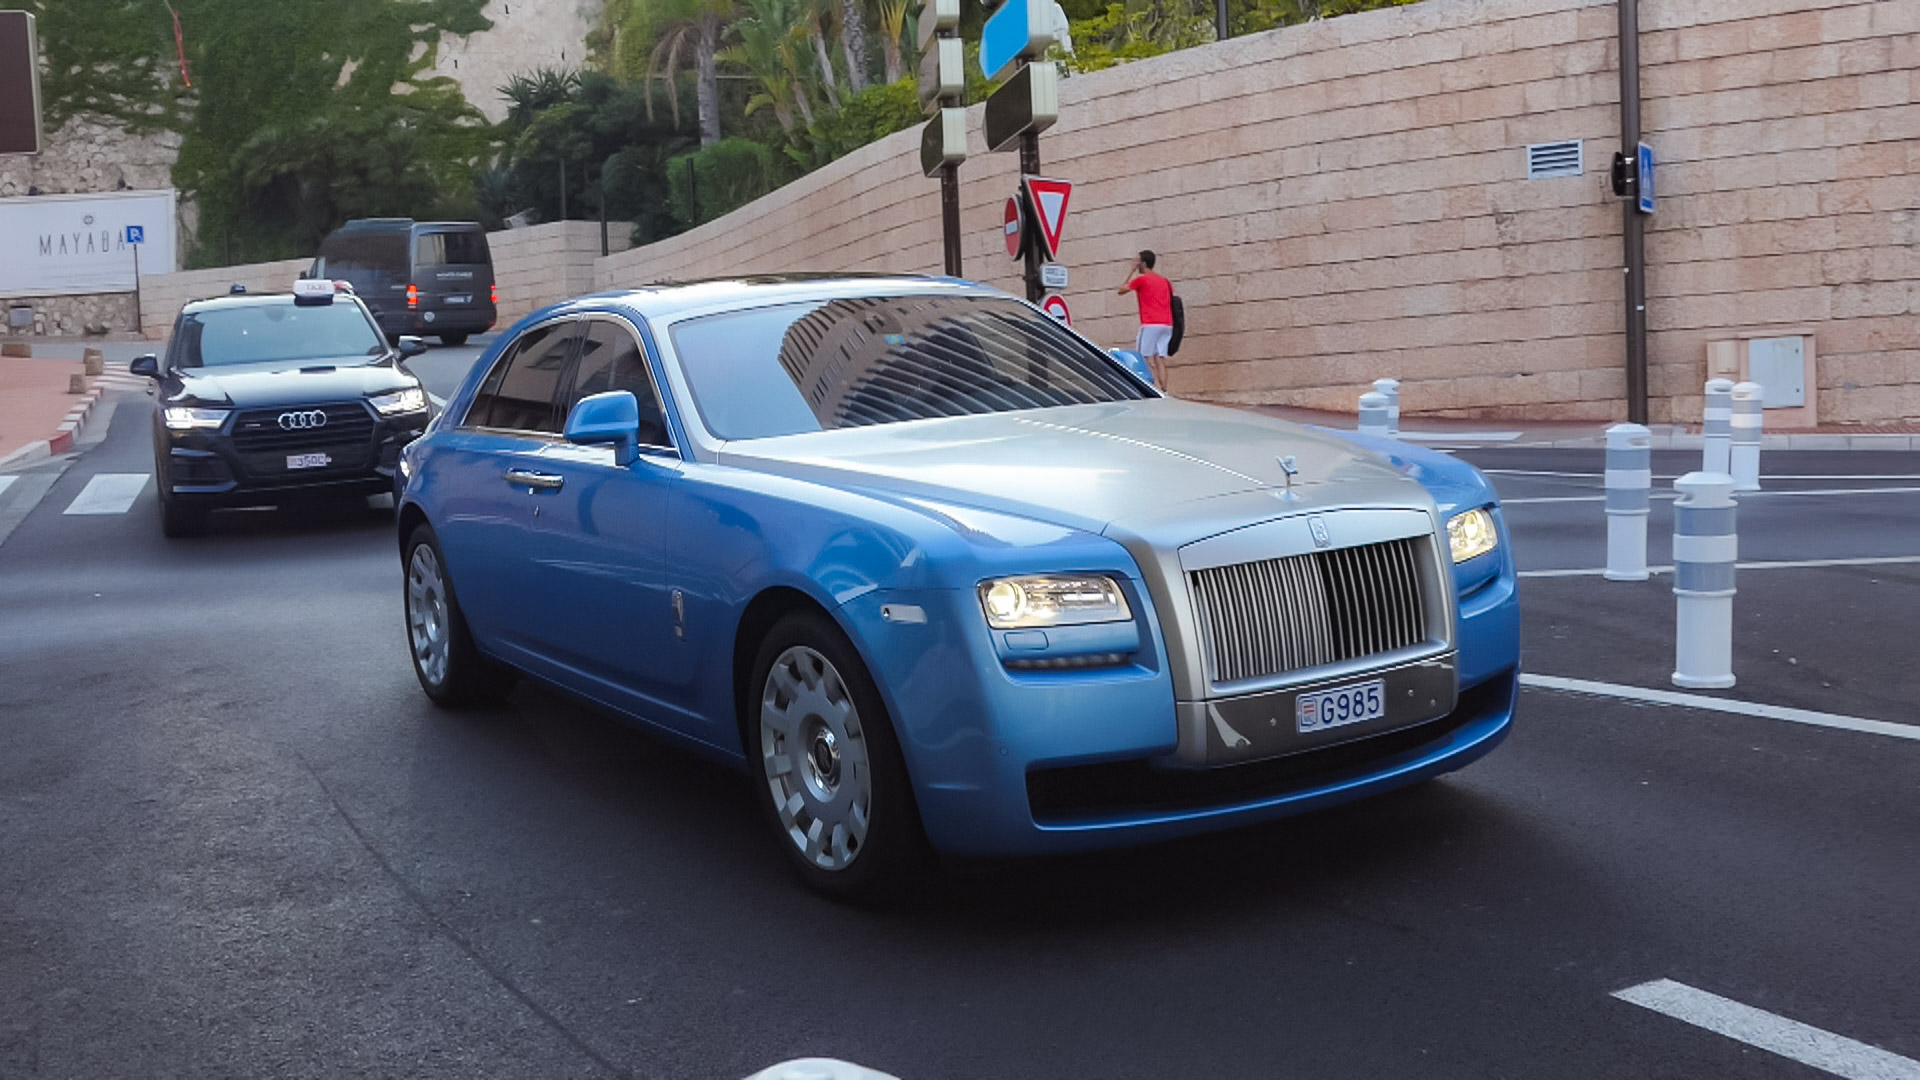 Rolls Royce Ghost - G985 (MC)